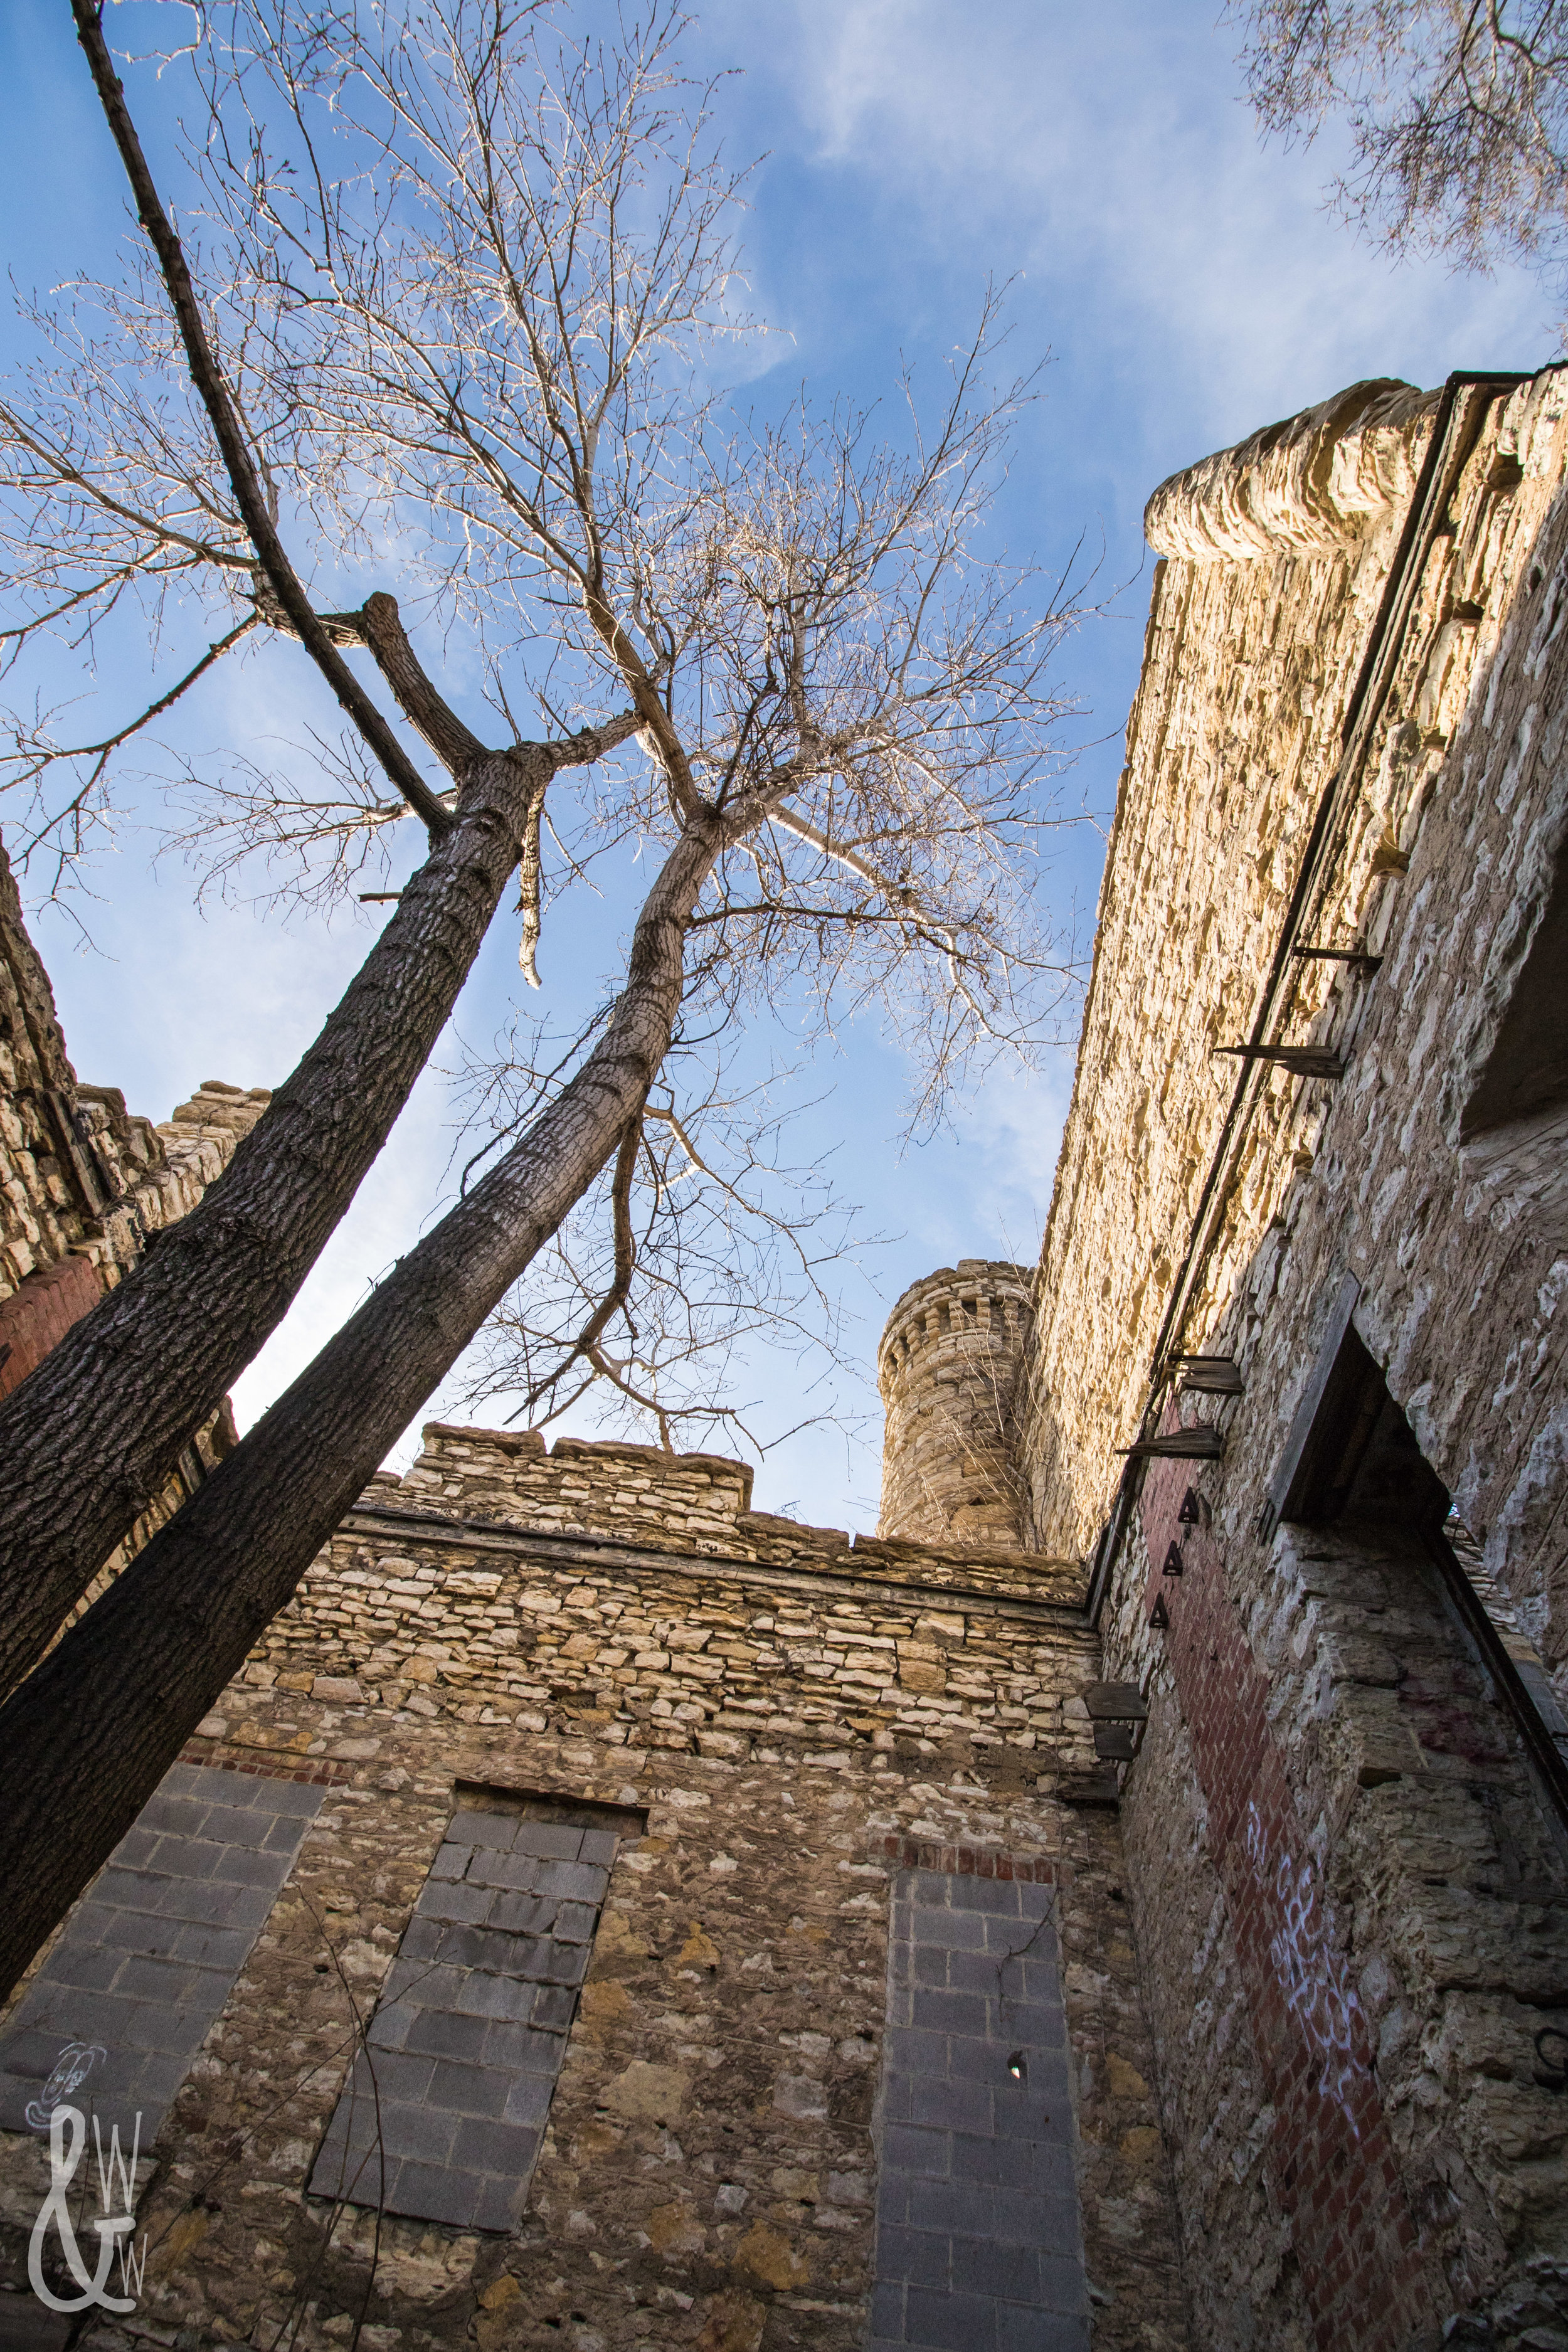 Visit the KC Workhouse Castle: part of my March Photography Challenge!